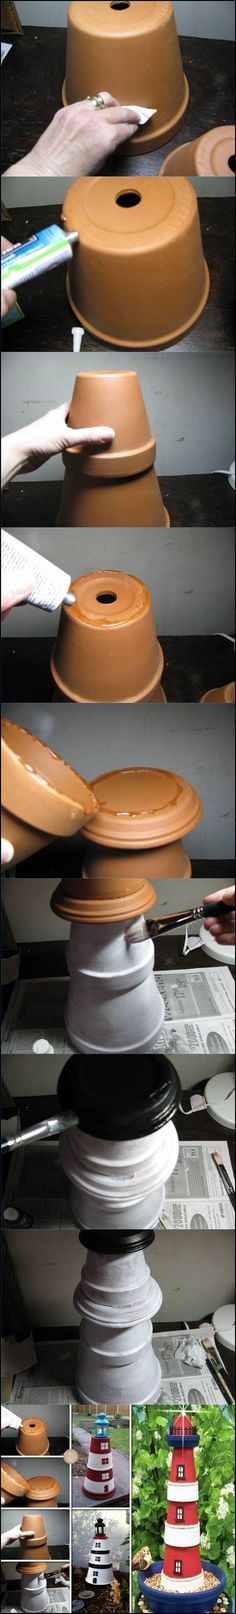 #DIY clay pot lighthouse --> http://wonderfuldiy.com/wonderful-diy-clay-pot-lighthouse/ #lighthouse